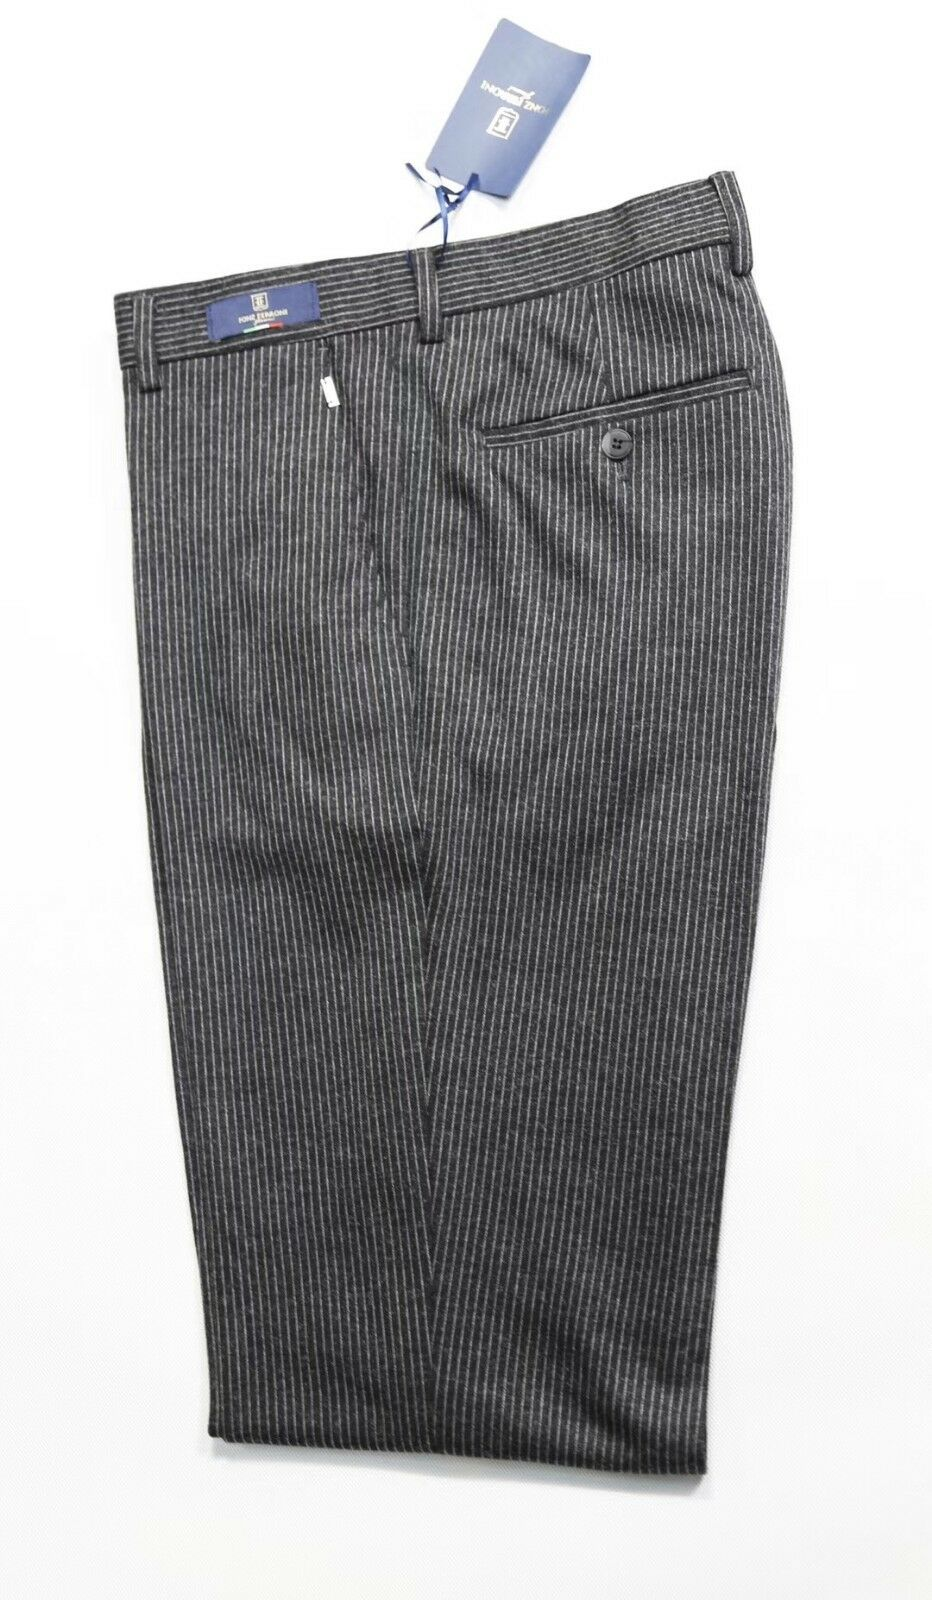 Fonz Ferroni Pants Wool Quality So Hi Feels Silk Amazing Size 38 33 Fonz Florenc